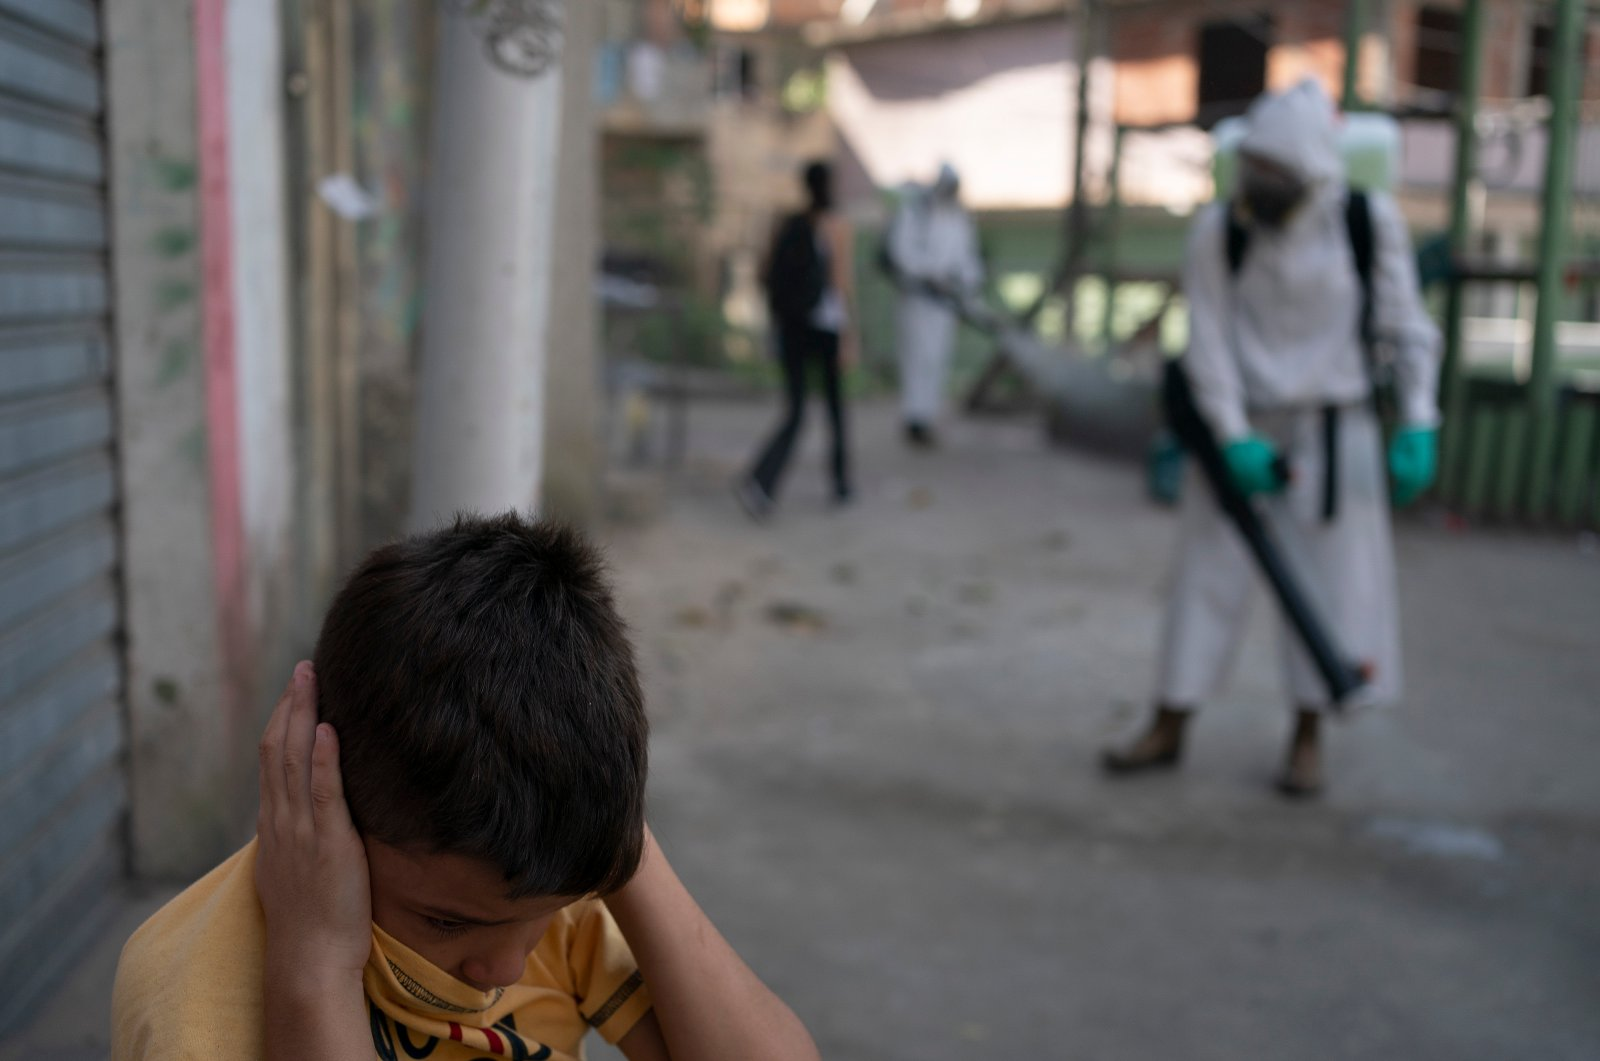 A boy protects his ears as a volunteer sprays disinfectant in an alleyway to help contain the spread of the coronavirus in the Babilonia slum of Rio de Janeiro, Brazil, July 12, 2020. (AP Photo)